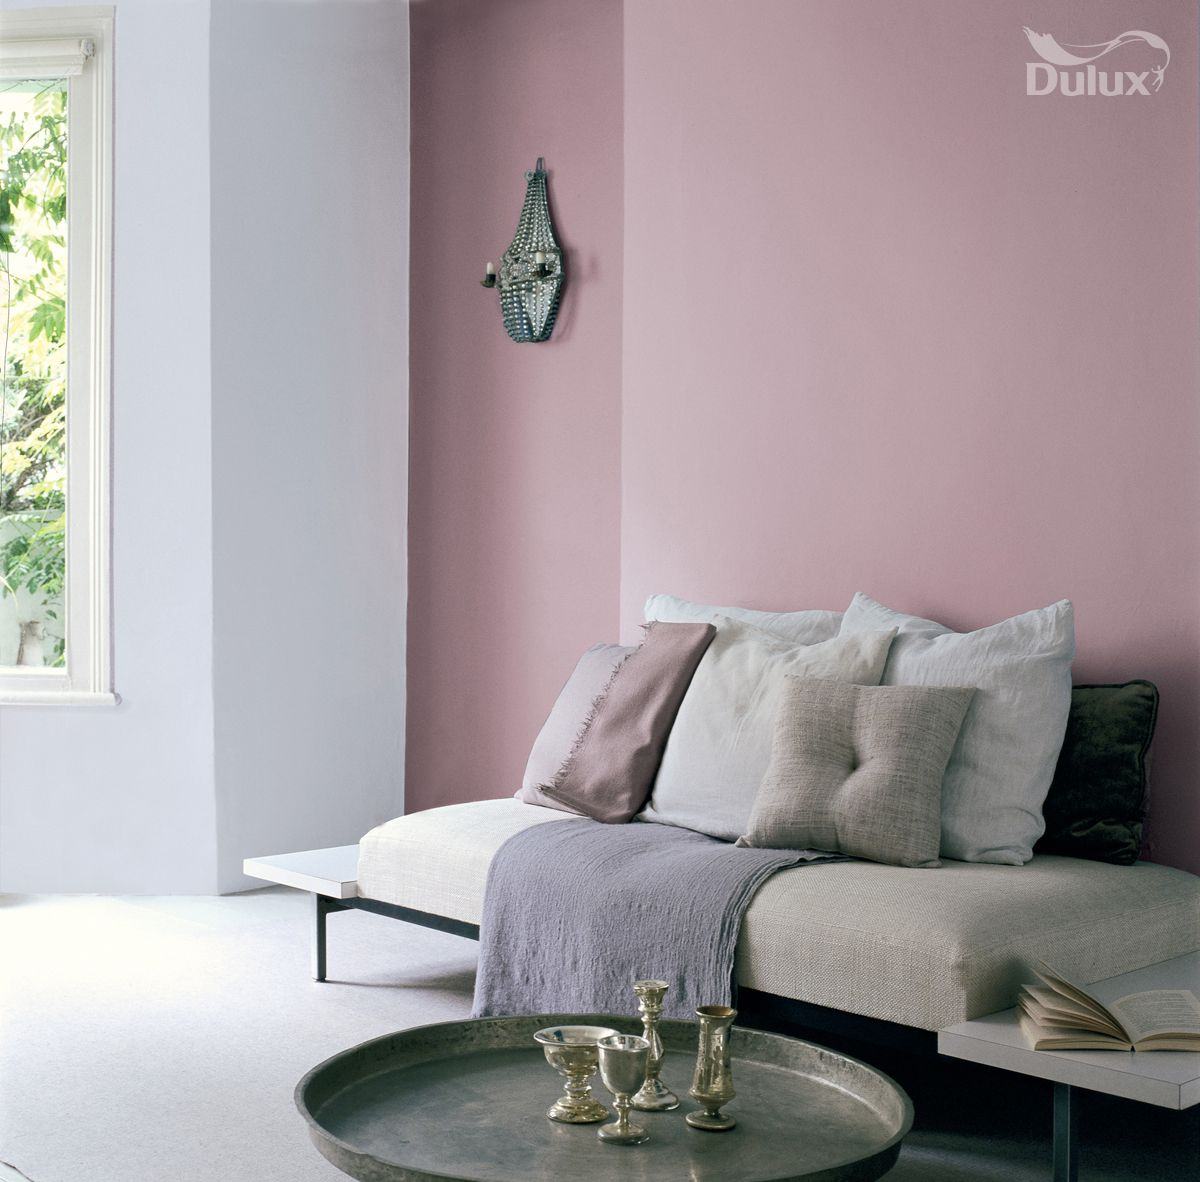 Violet and blue is an enchanting combination of delicate for Dulux paint living room ideas